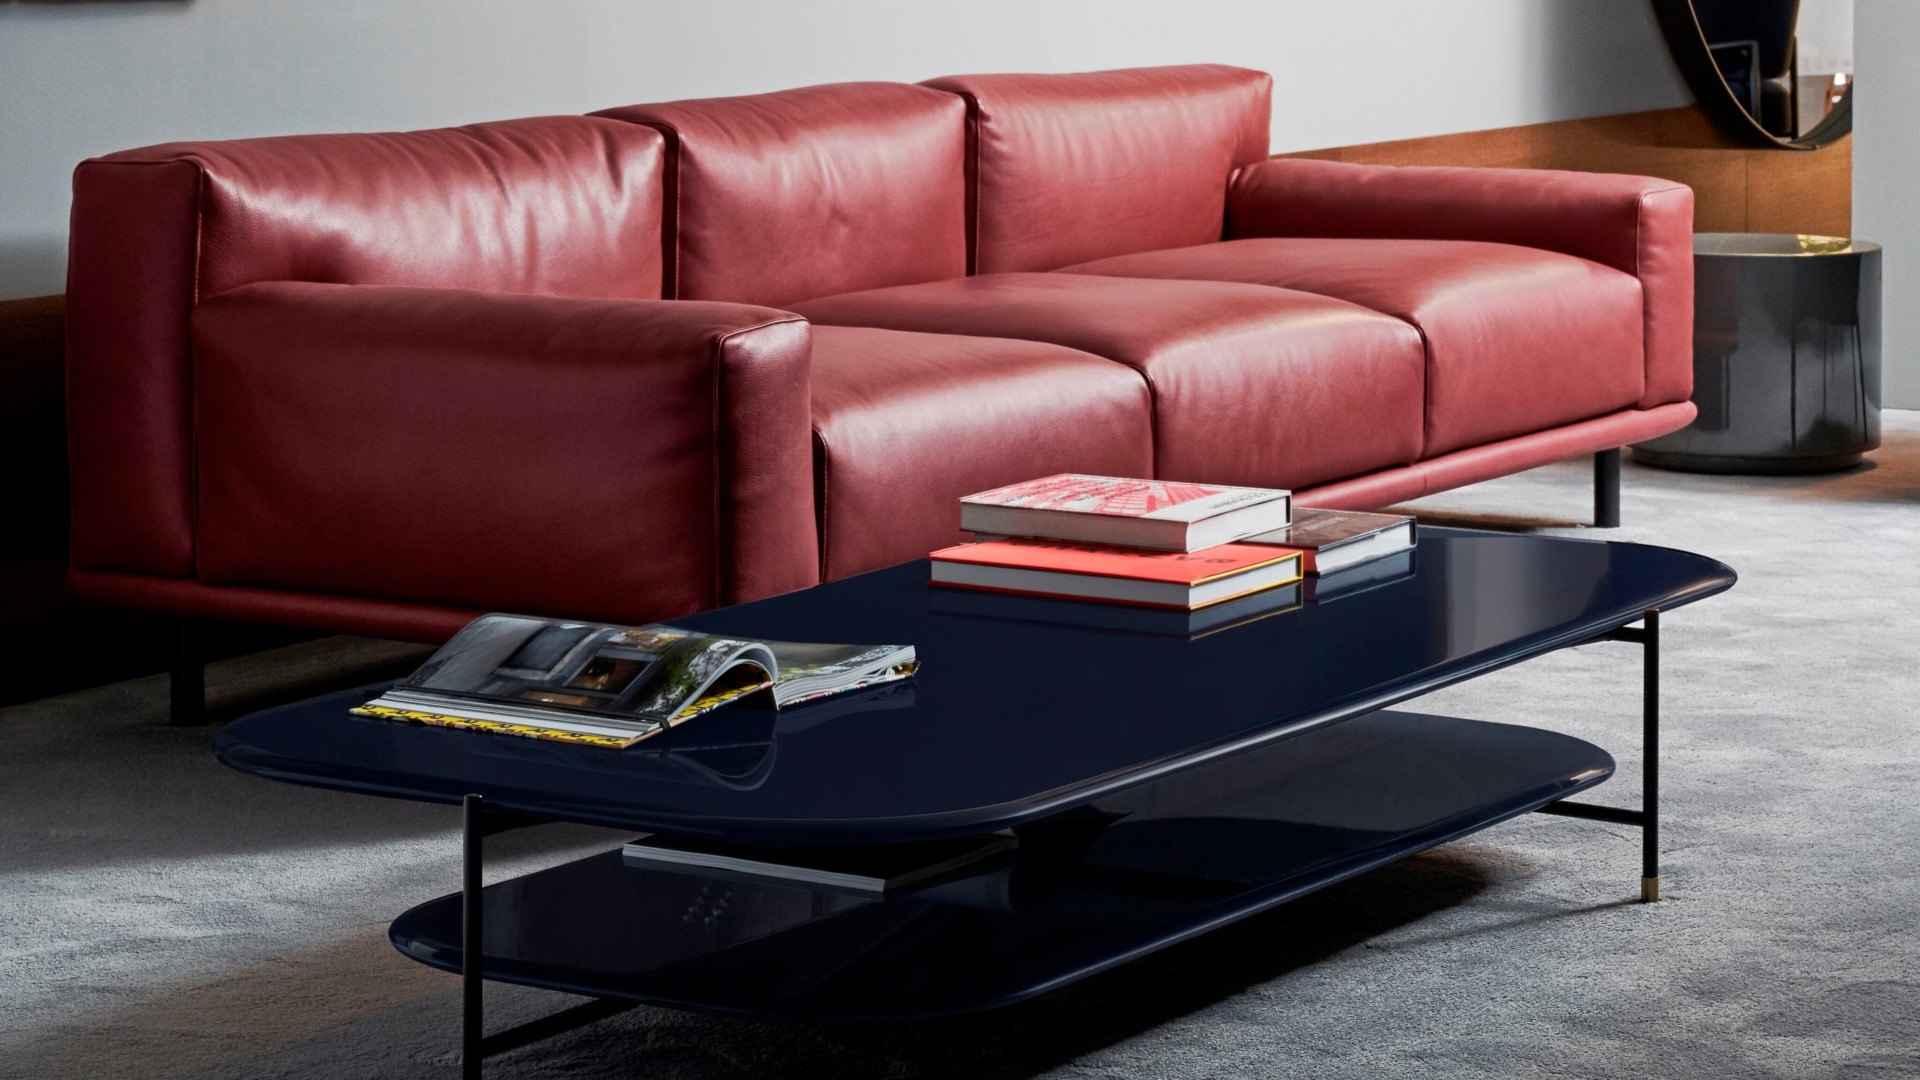 485_21 - Meridiani - salone 2019 - timothy sofa - adrian low table